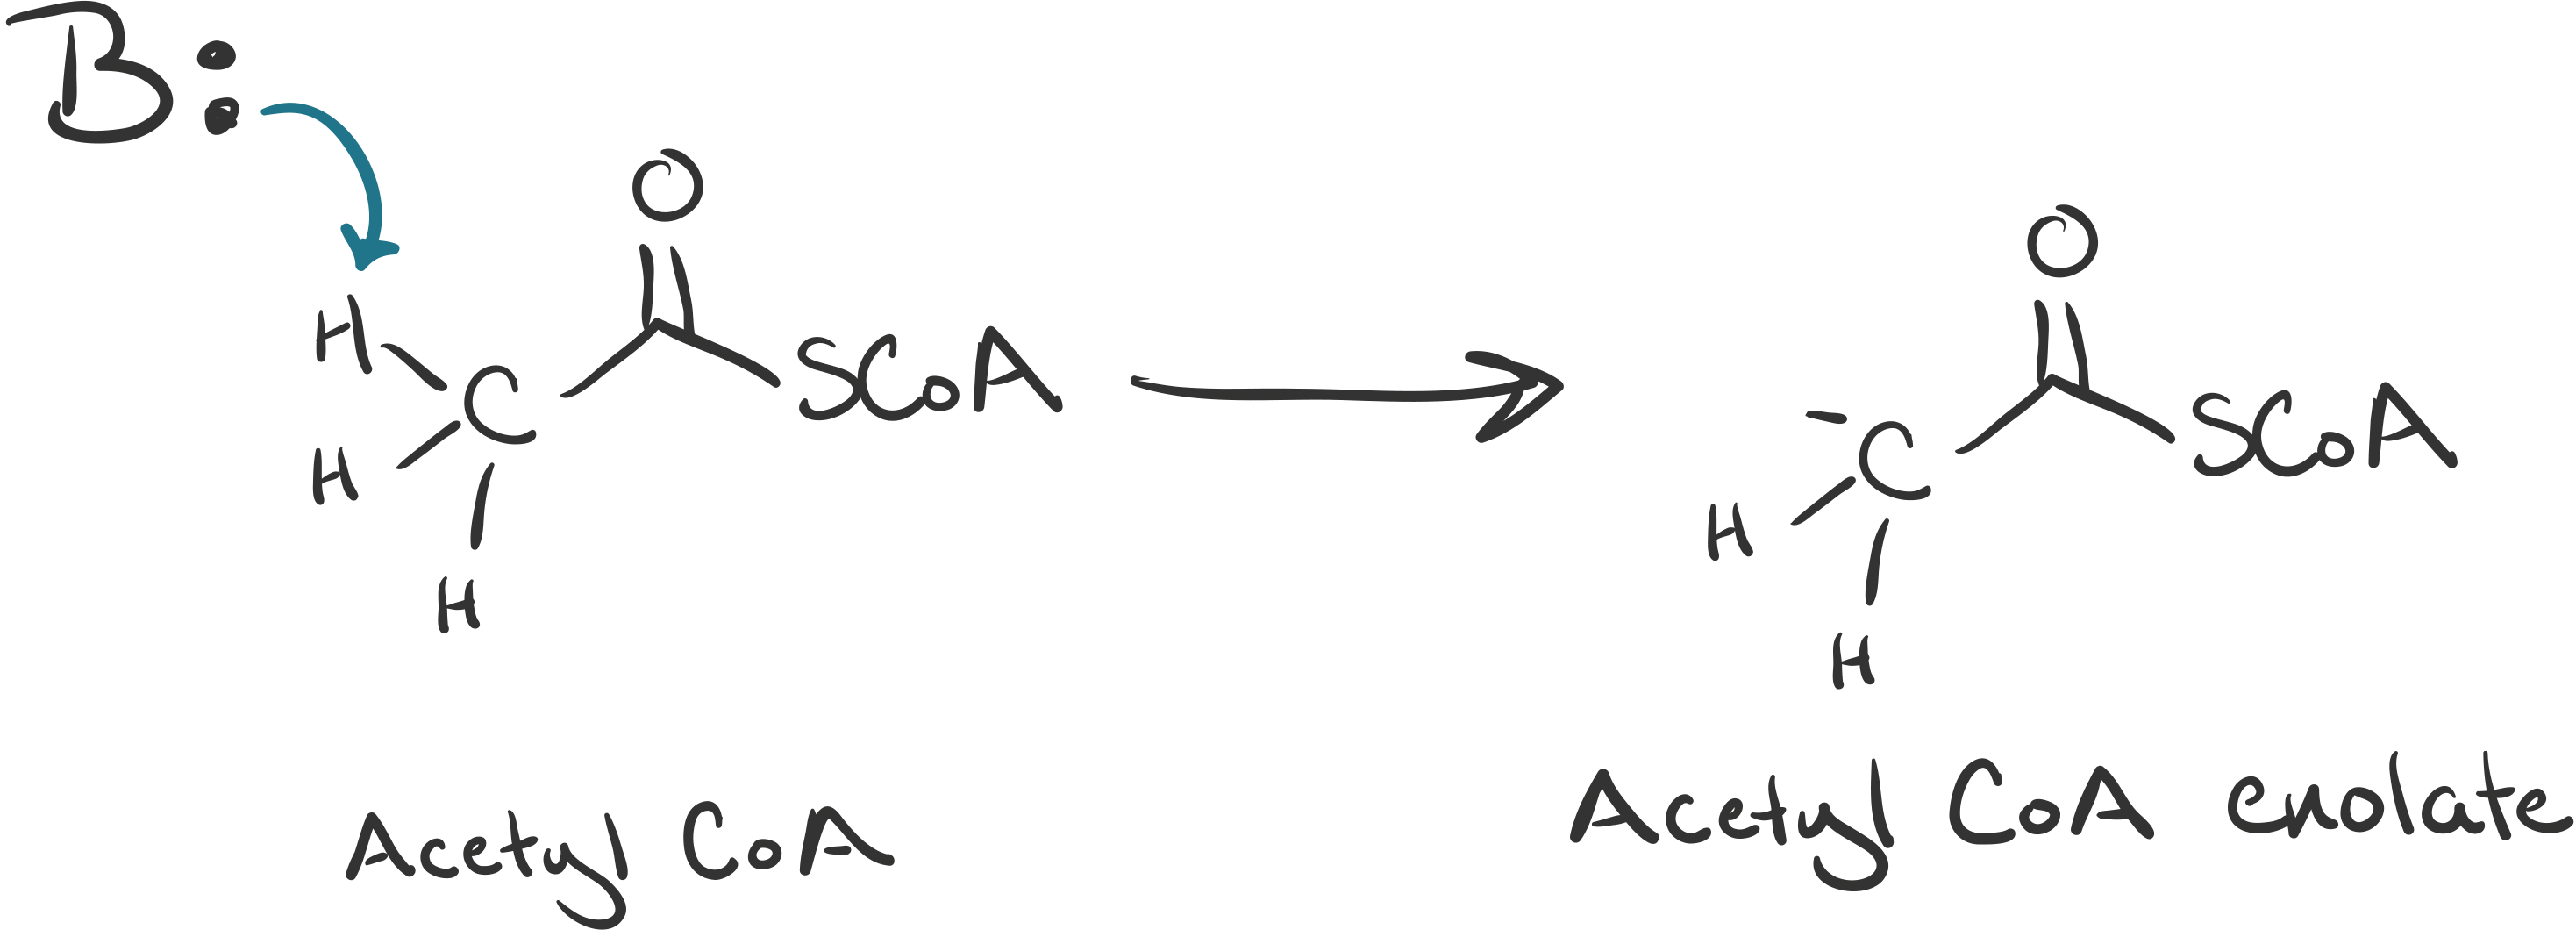 Aldol reactions in metabolism